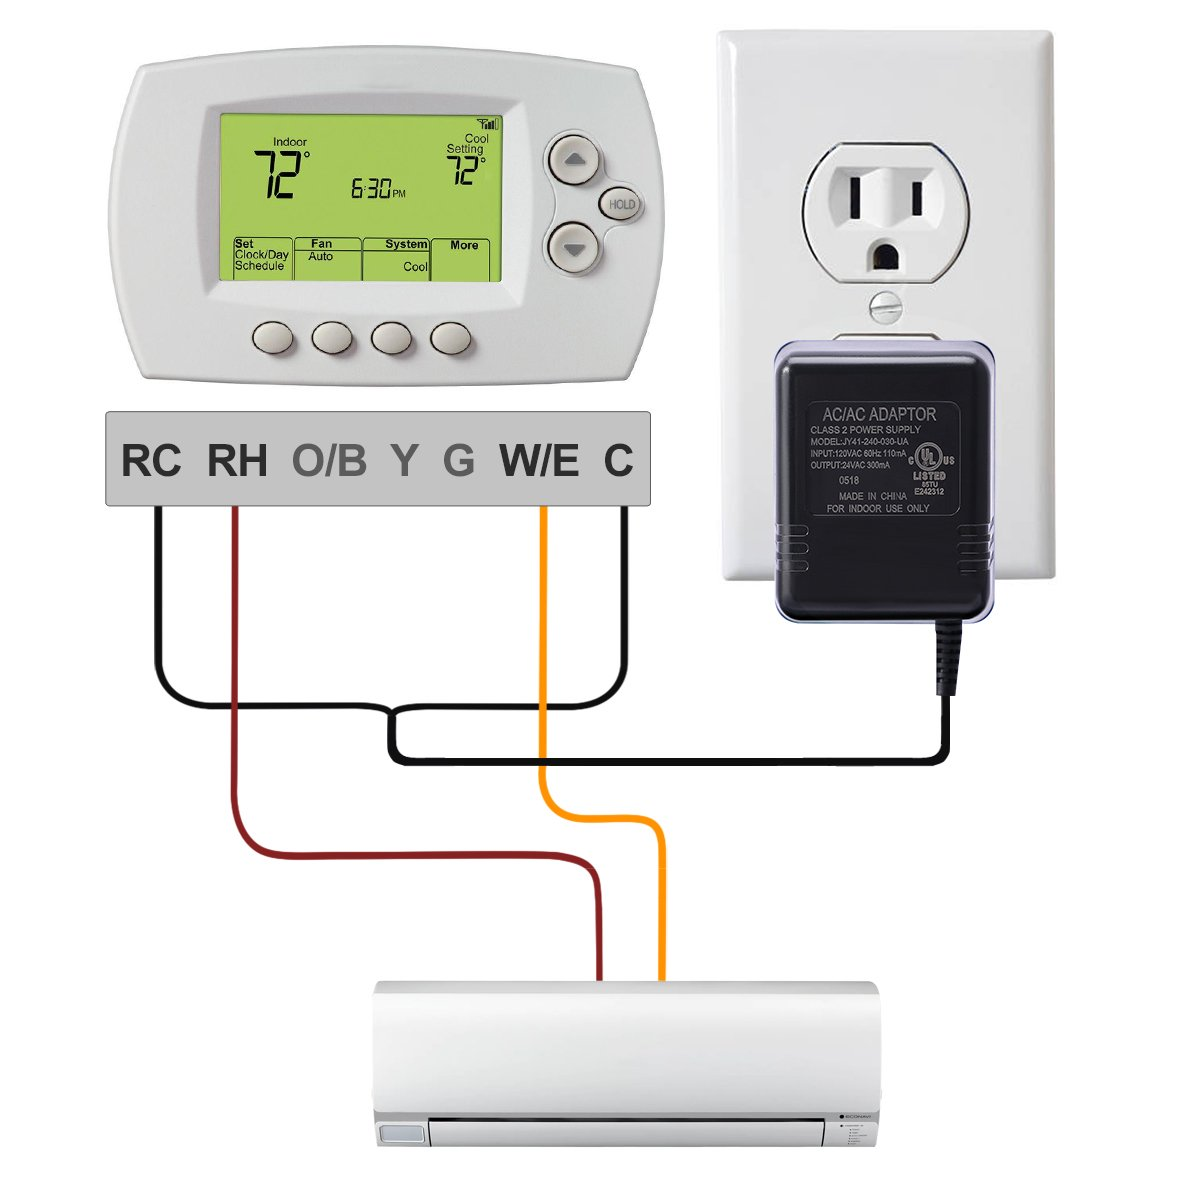 Ac24v C Wire Power Adapterlammu 24v Transformer Requires Honeywell Thermostat Wiring Wifi Nest